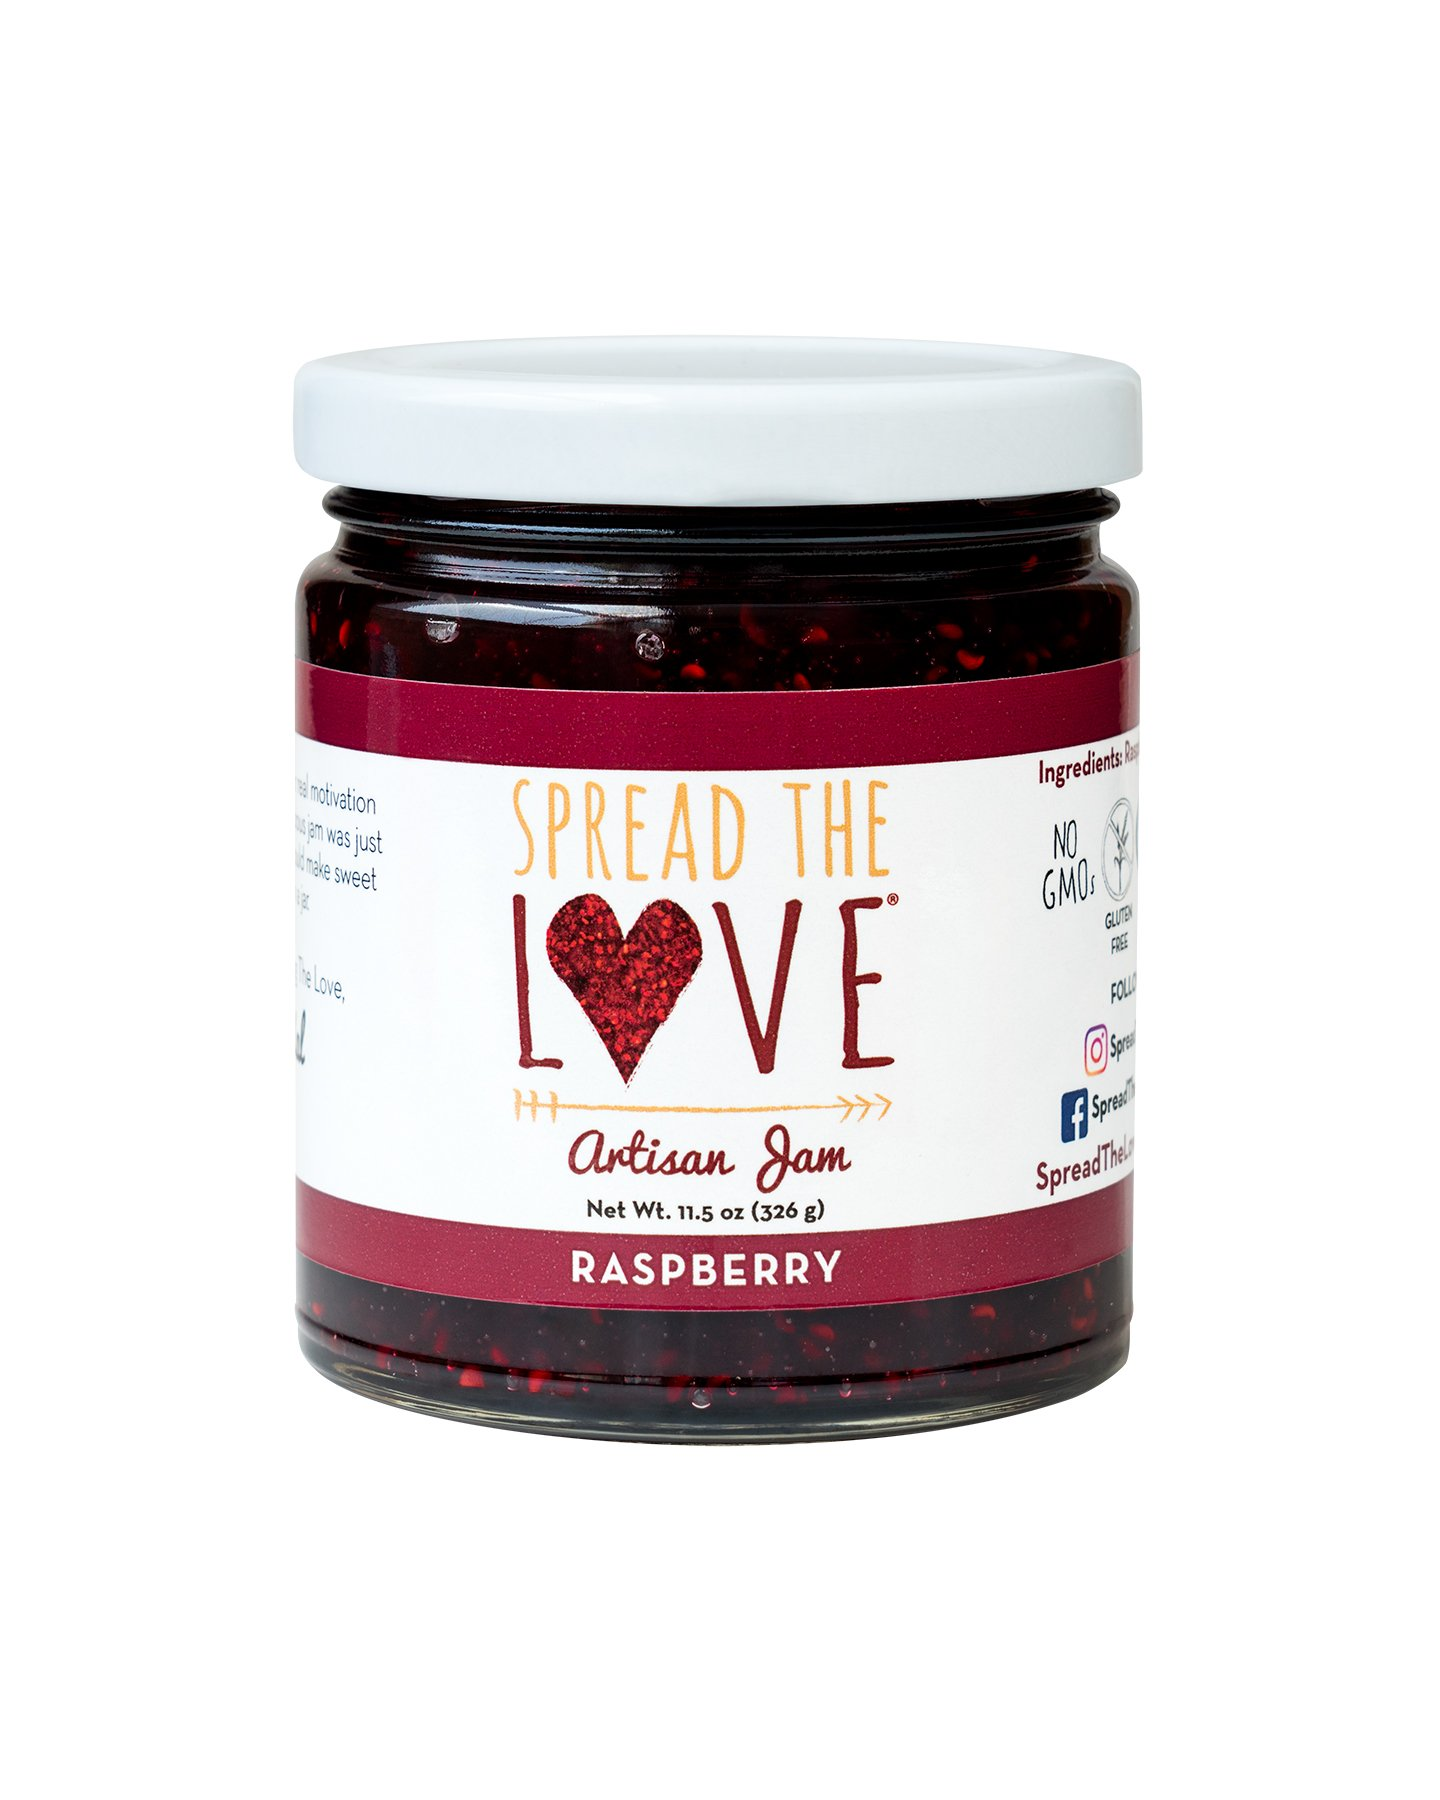 Spread The Love Artisan Jam, Raspberry (All Natural, Vegan, Gluten-free, No added salt, No pectin) by Spread The Love